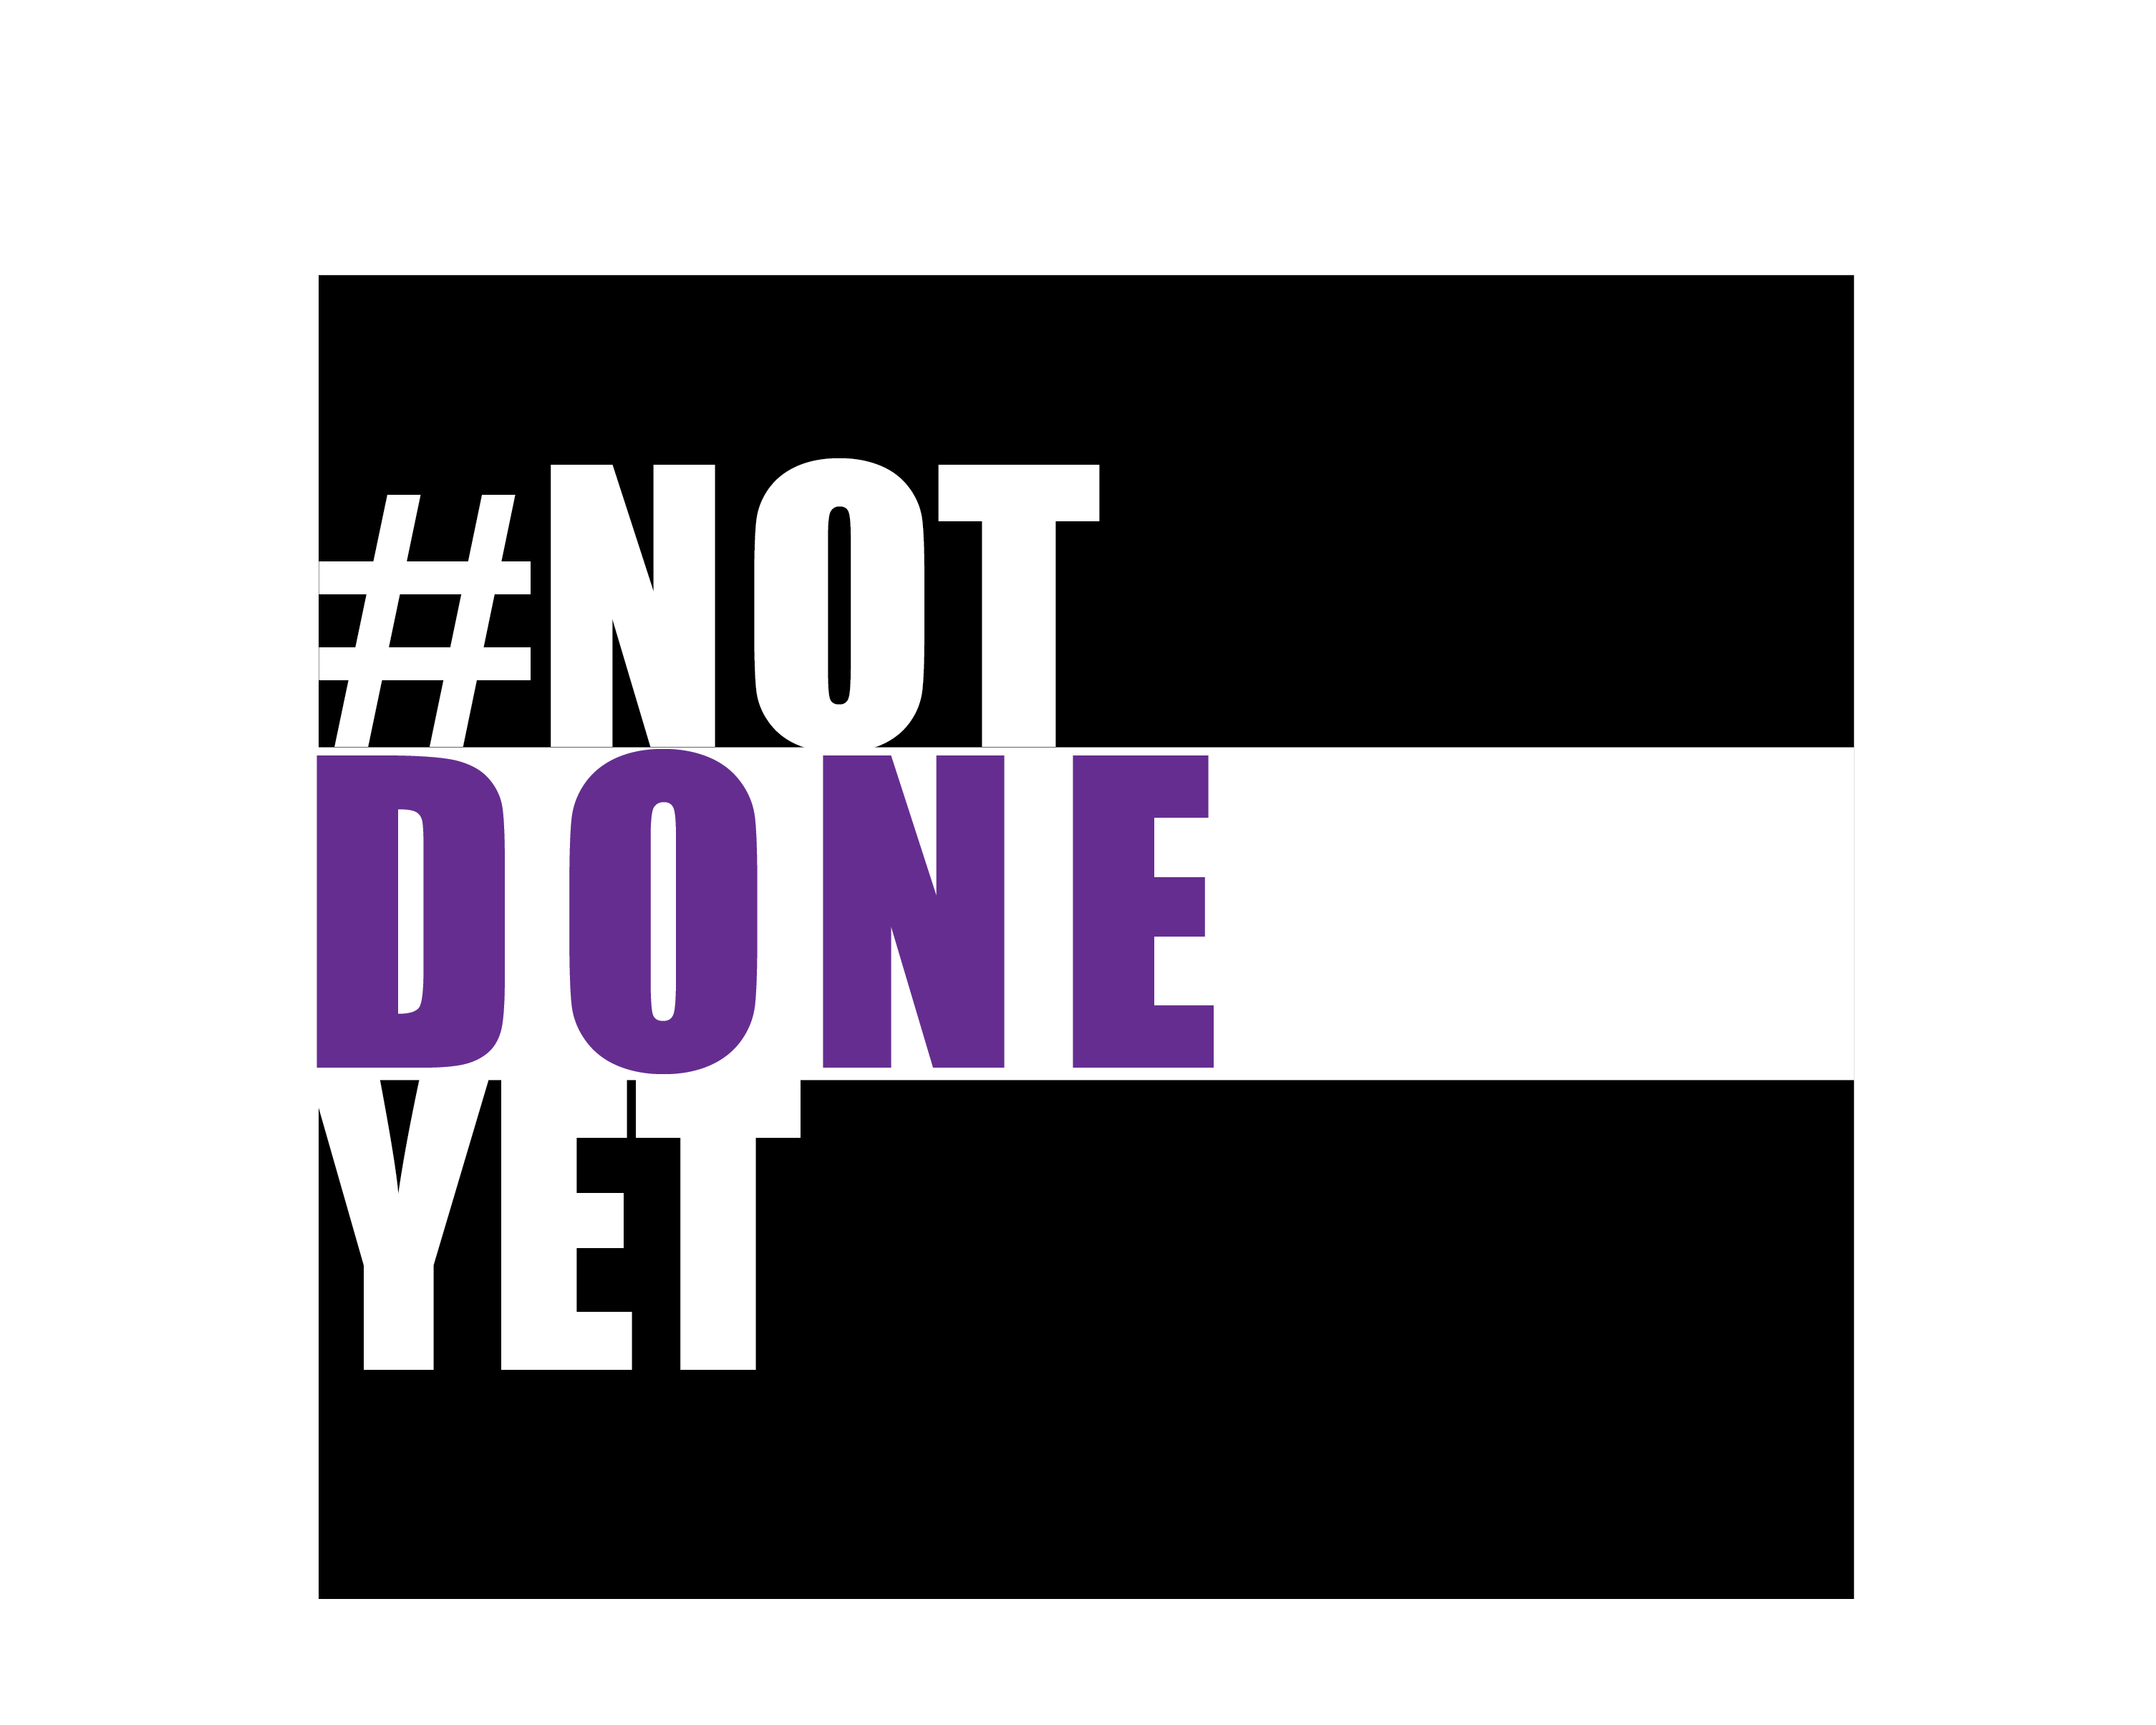 not done yet [Recovered]-02